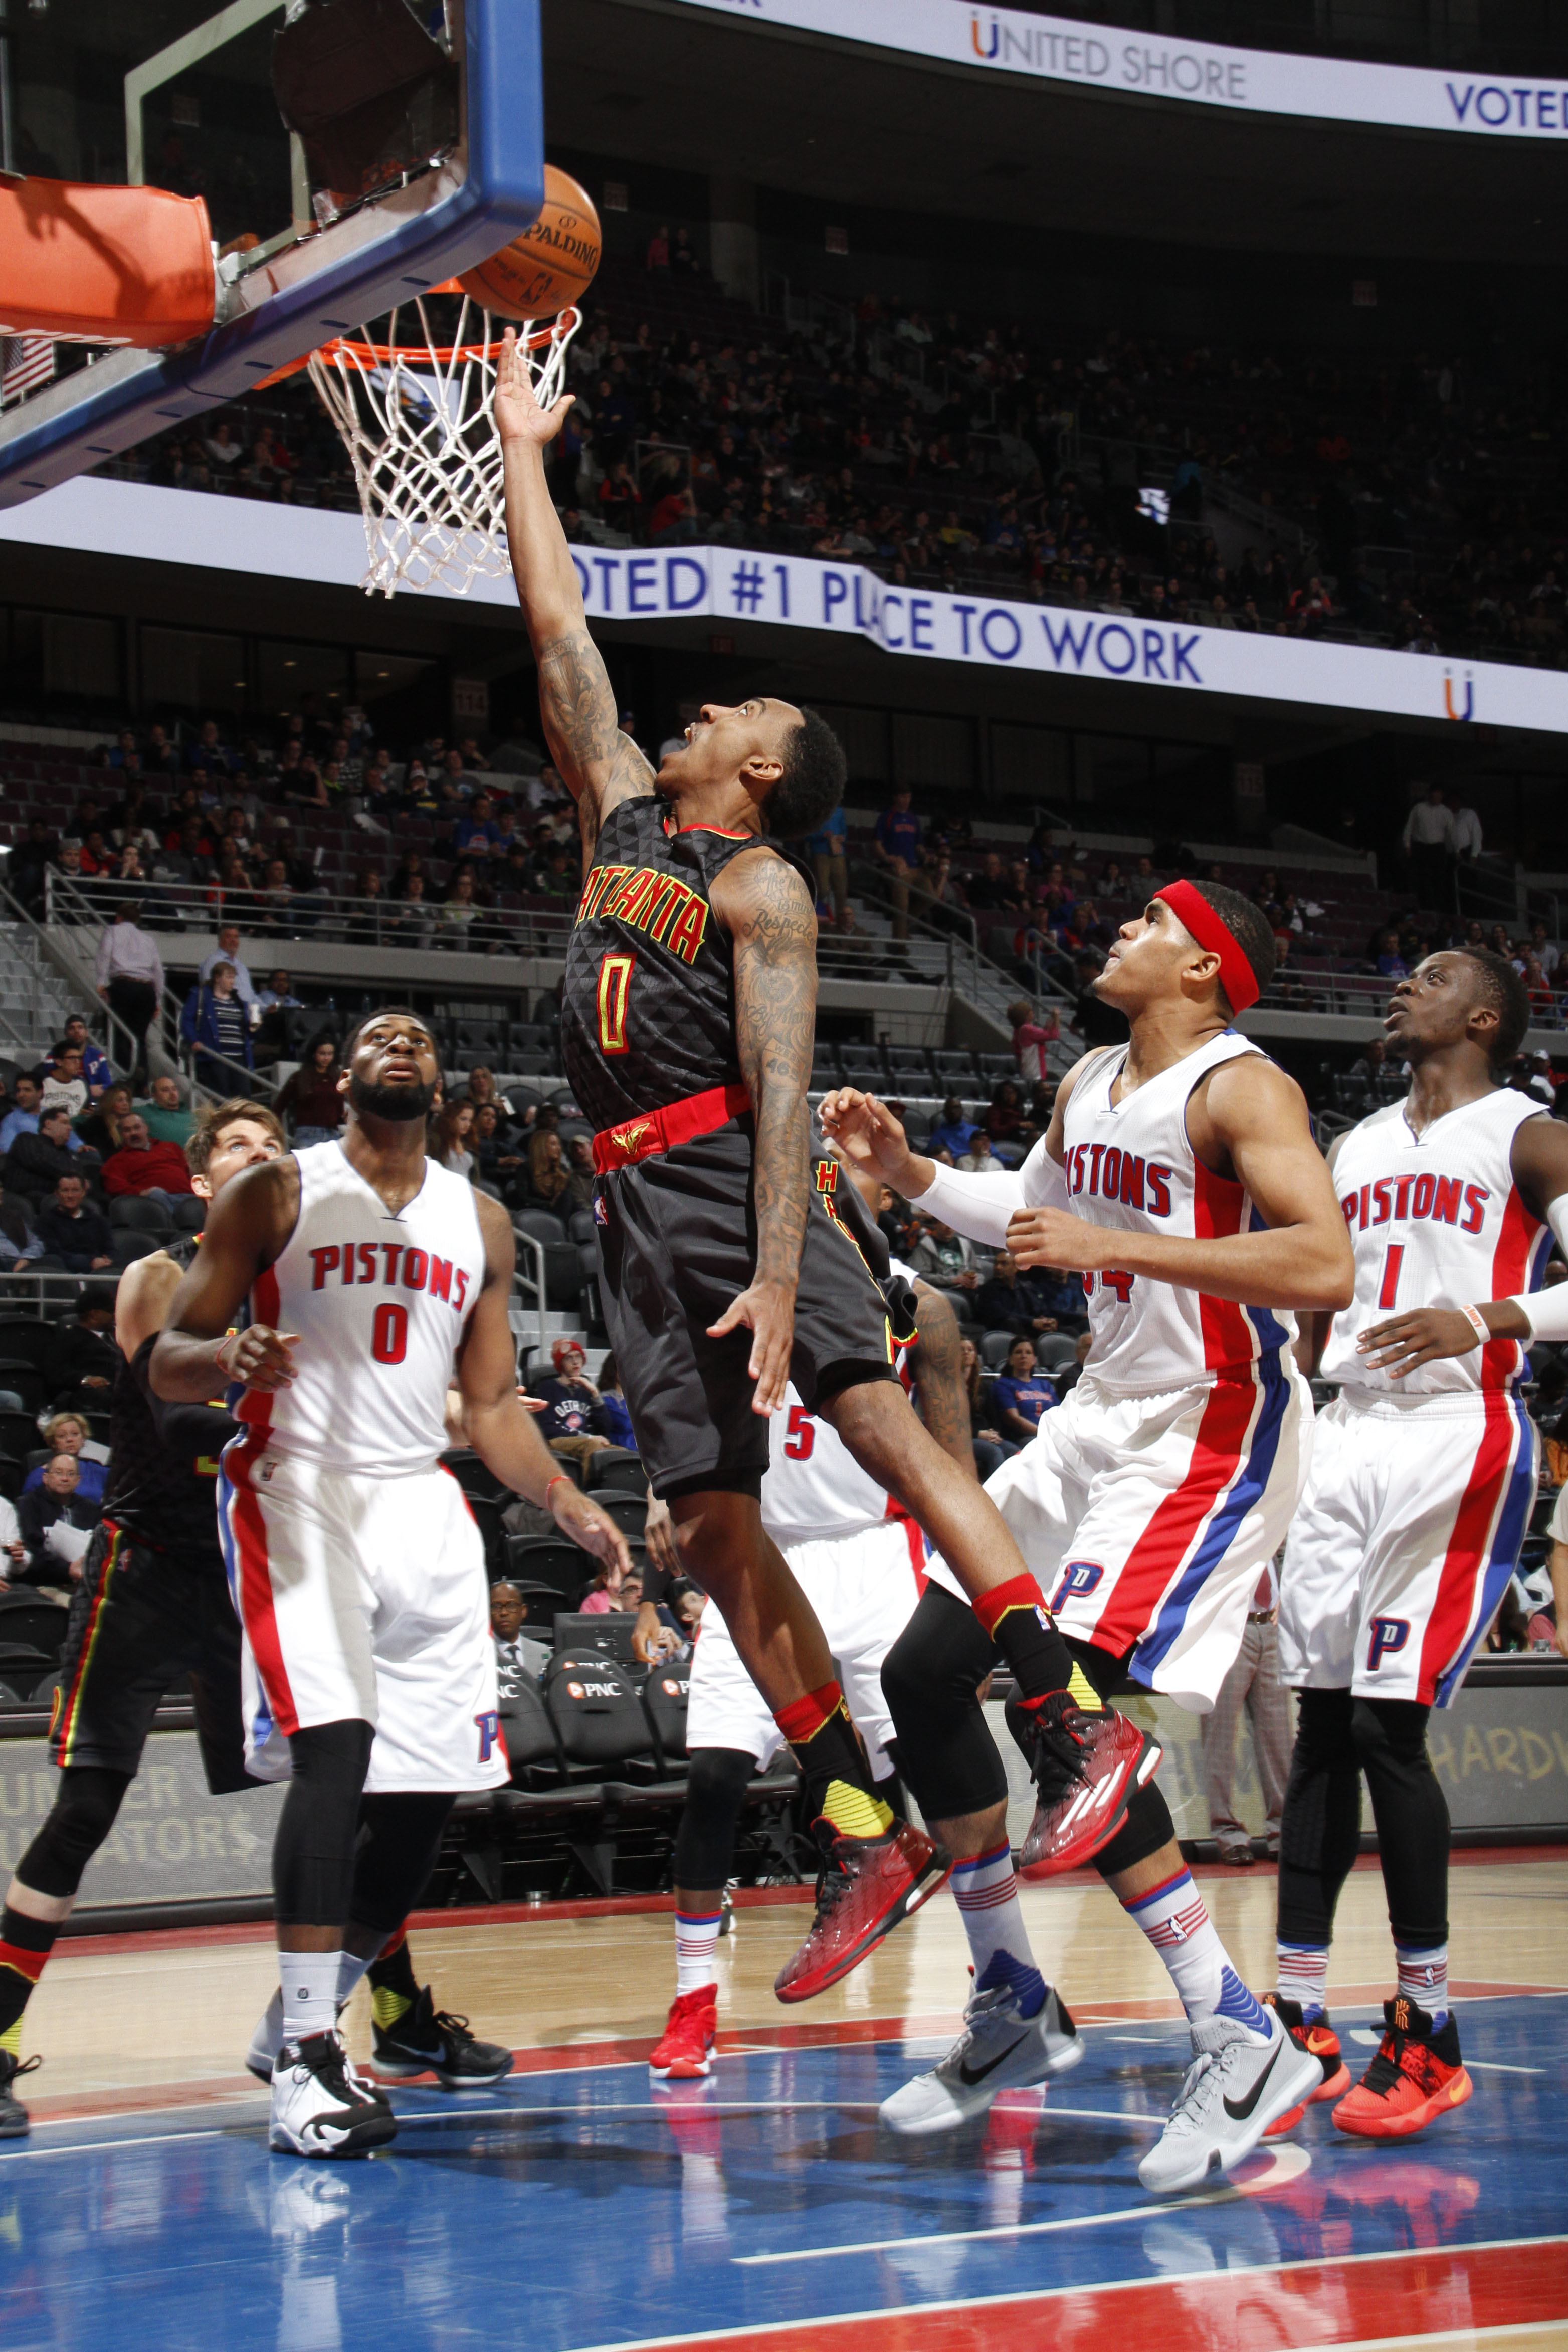 AUBURN HILLS, MI  - MARCH 16: Jeff Teague #0 of the Atlanta Hawks goes for the lay up against the Detroit Pistons during the game on March 16, 2016 at The Palace of Auburn Hills in Auburn Hills, Michigan. (Photo by B.Sevald/Einstein/NBAE via Getty Images)